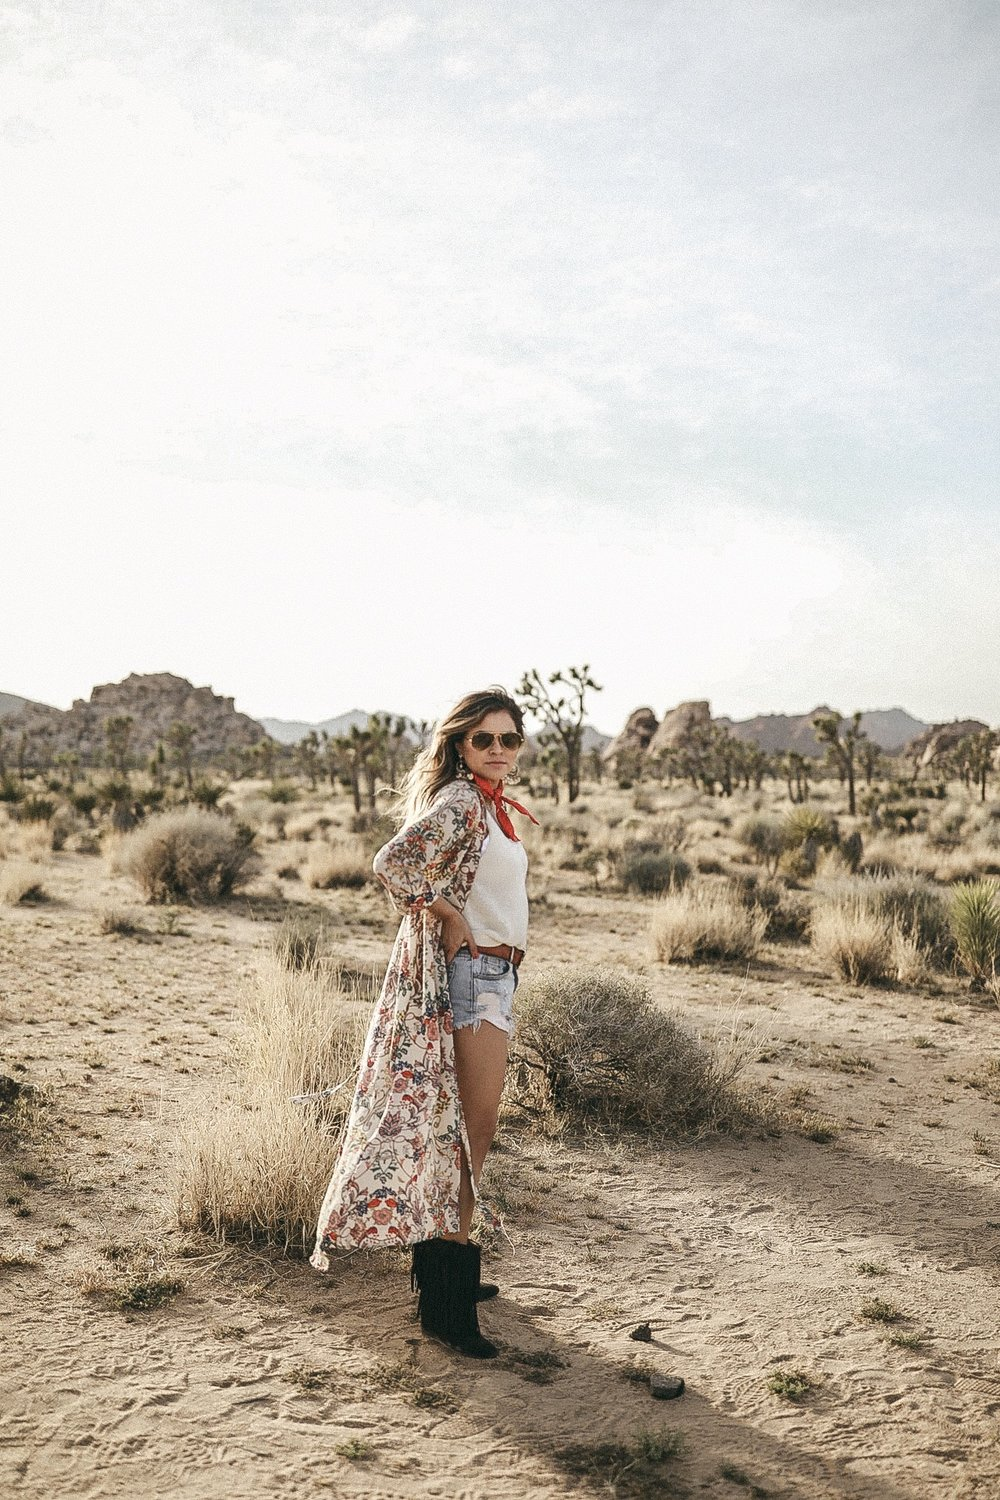 Find Me in the Desert - Joshua Tree, California